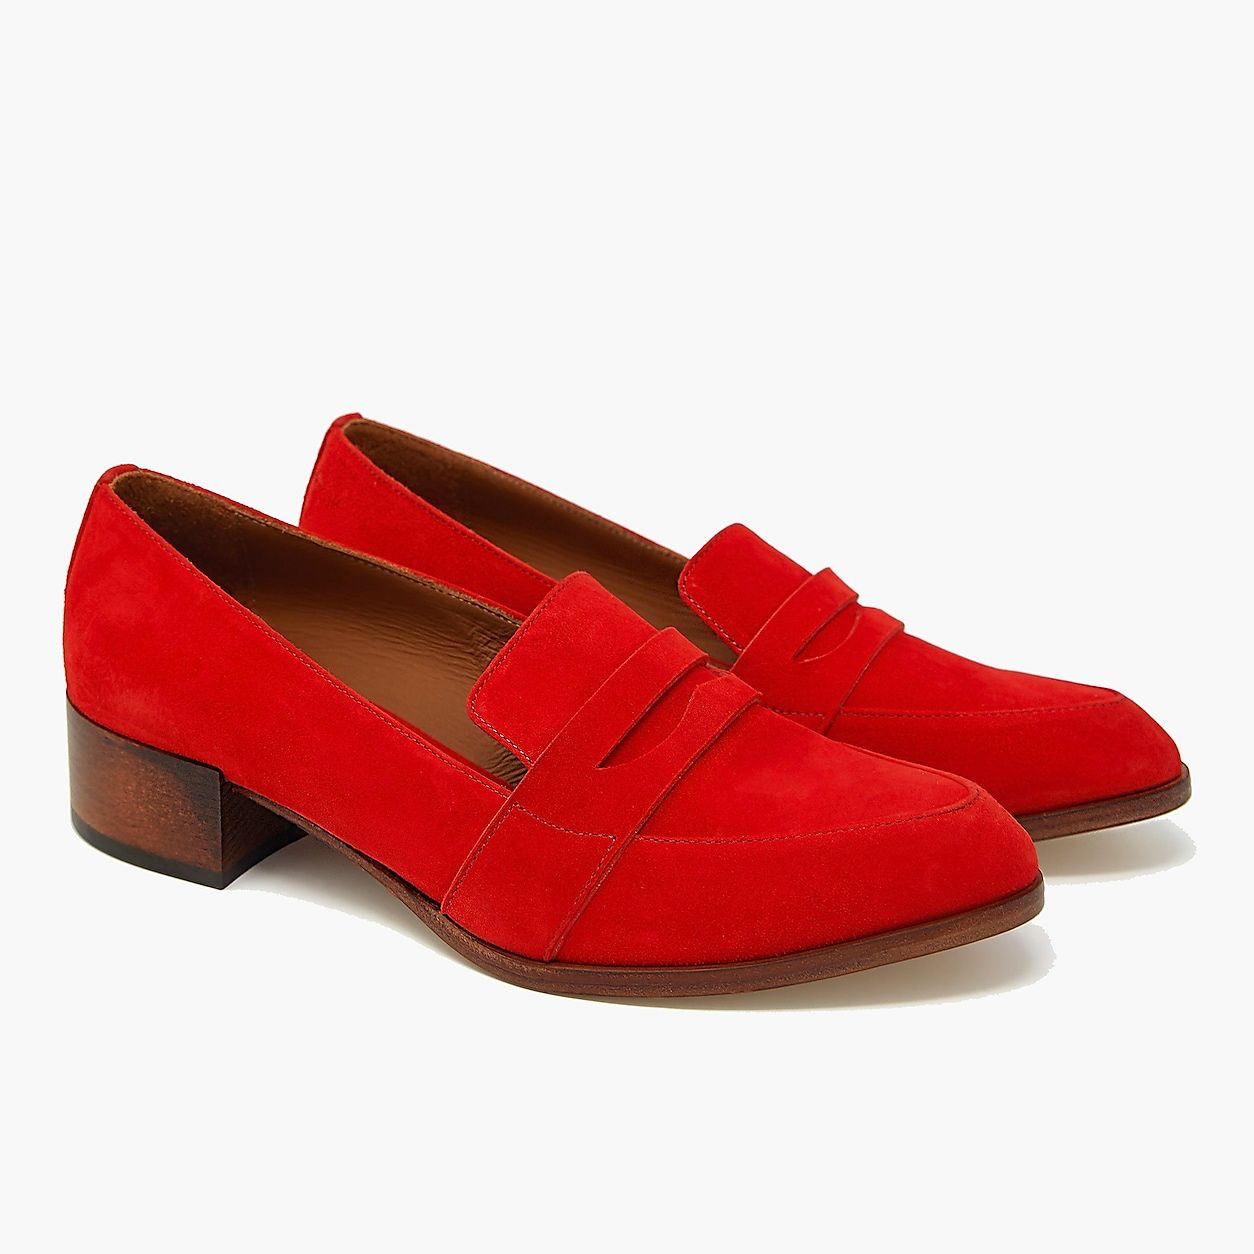 1f537dcc154 Thelma Penny Loafers